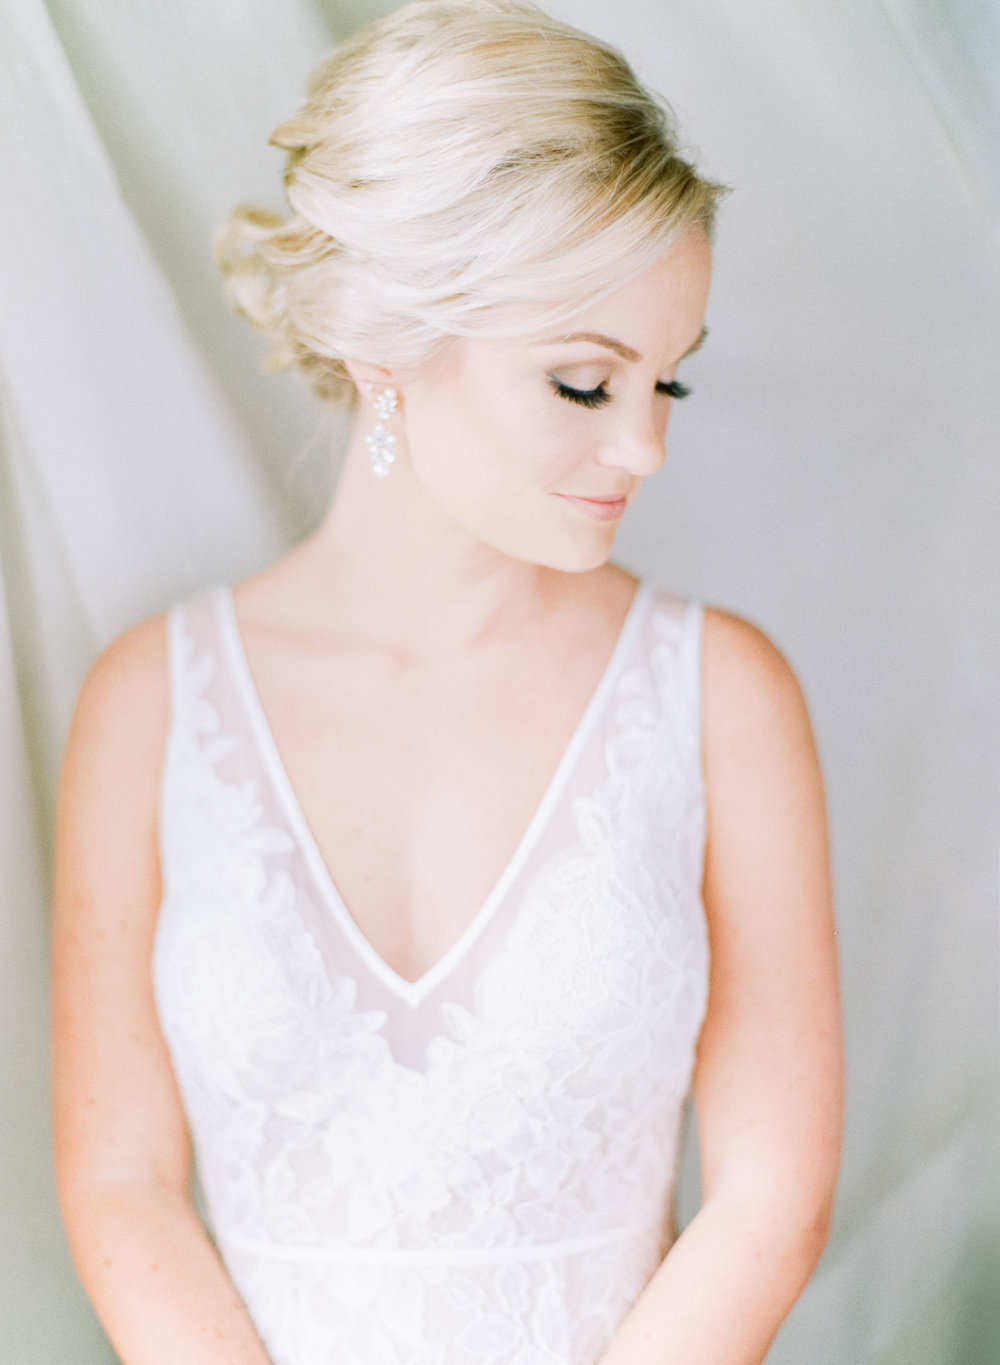 Image of Bride during getting ready taken with Contax 645 and Zeiss 80mm f/2